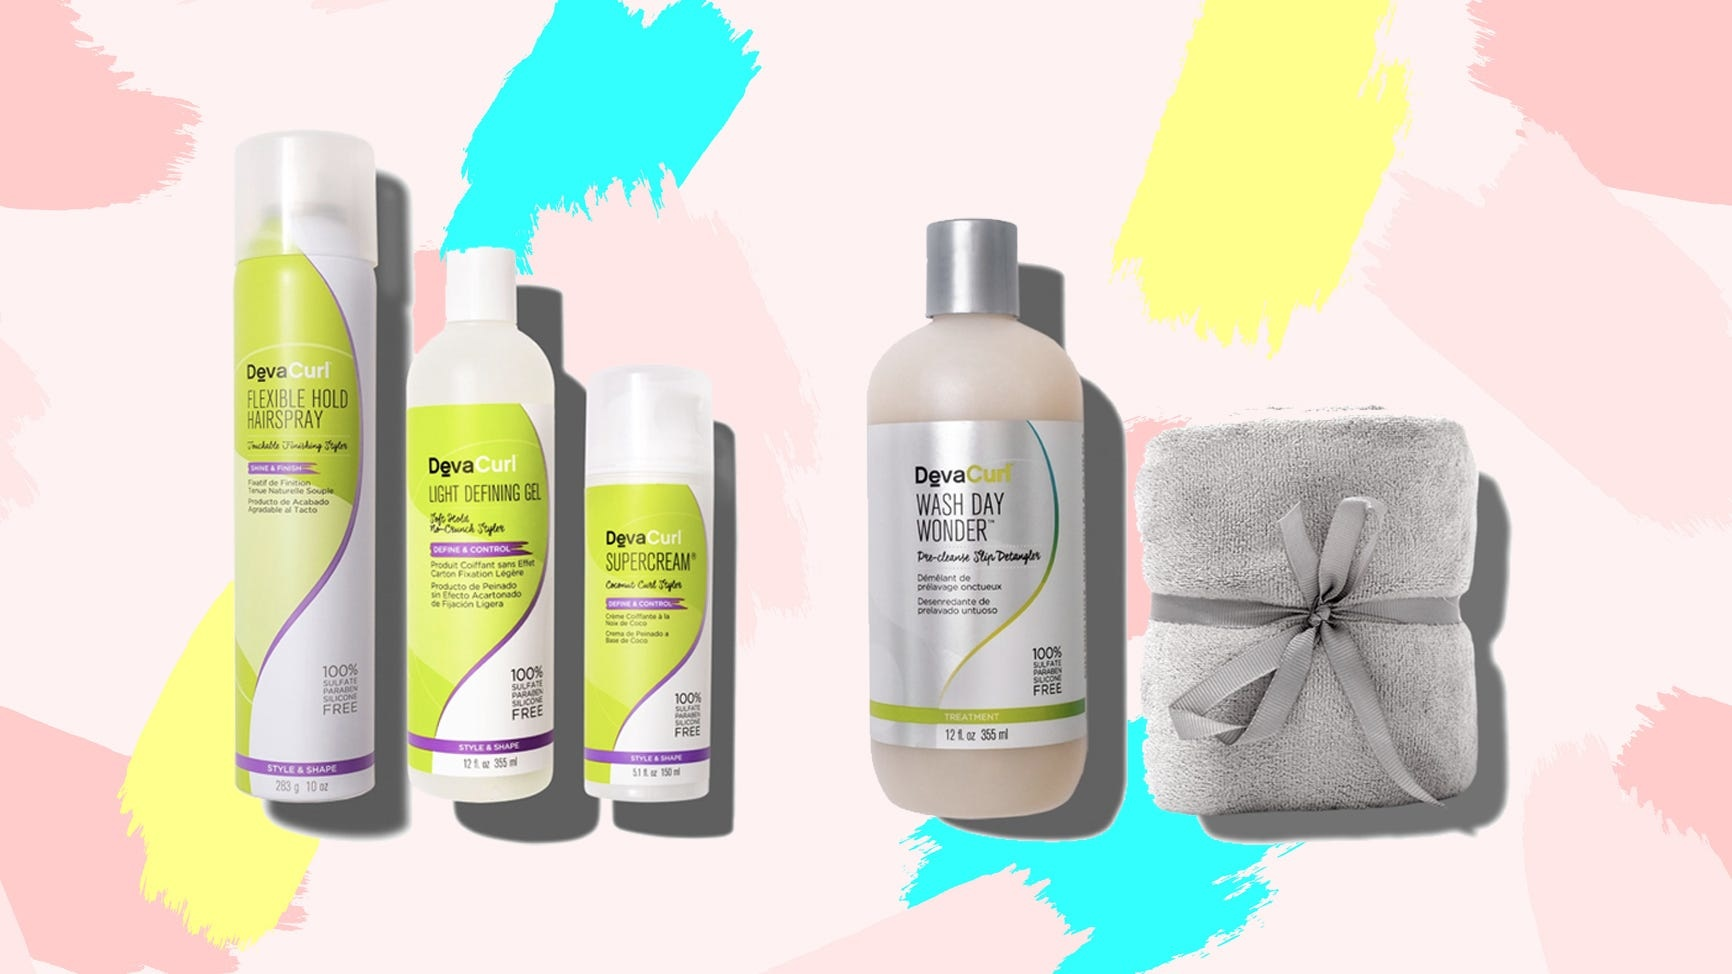 Should Curly Hair Brand DevaCurl Be Canceled?